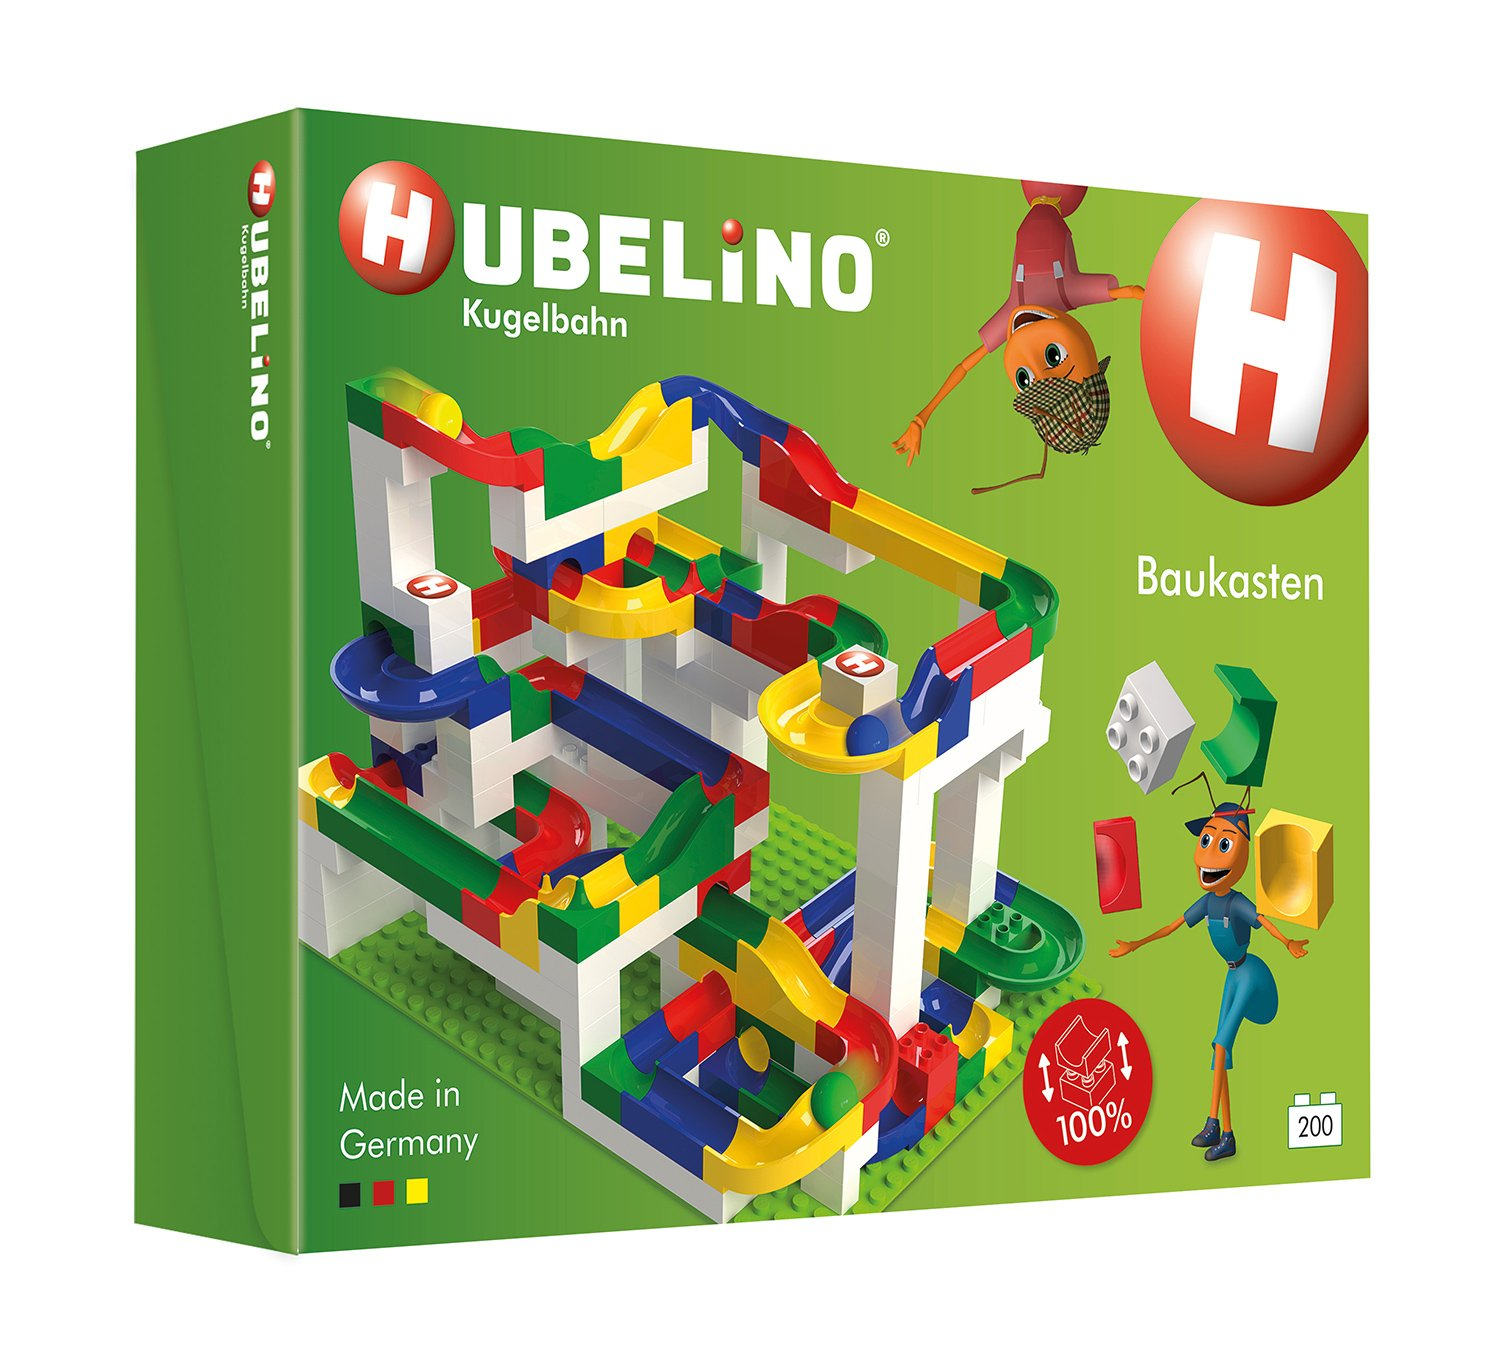 HUBELINO Marble Run - 200-Piece Big Building Box - the Original! Made in Germany! - Certified and Award-Winning Marble Run - 100% Duplo Compatible